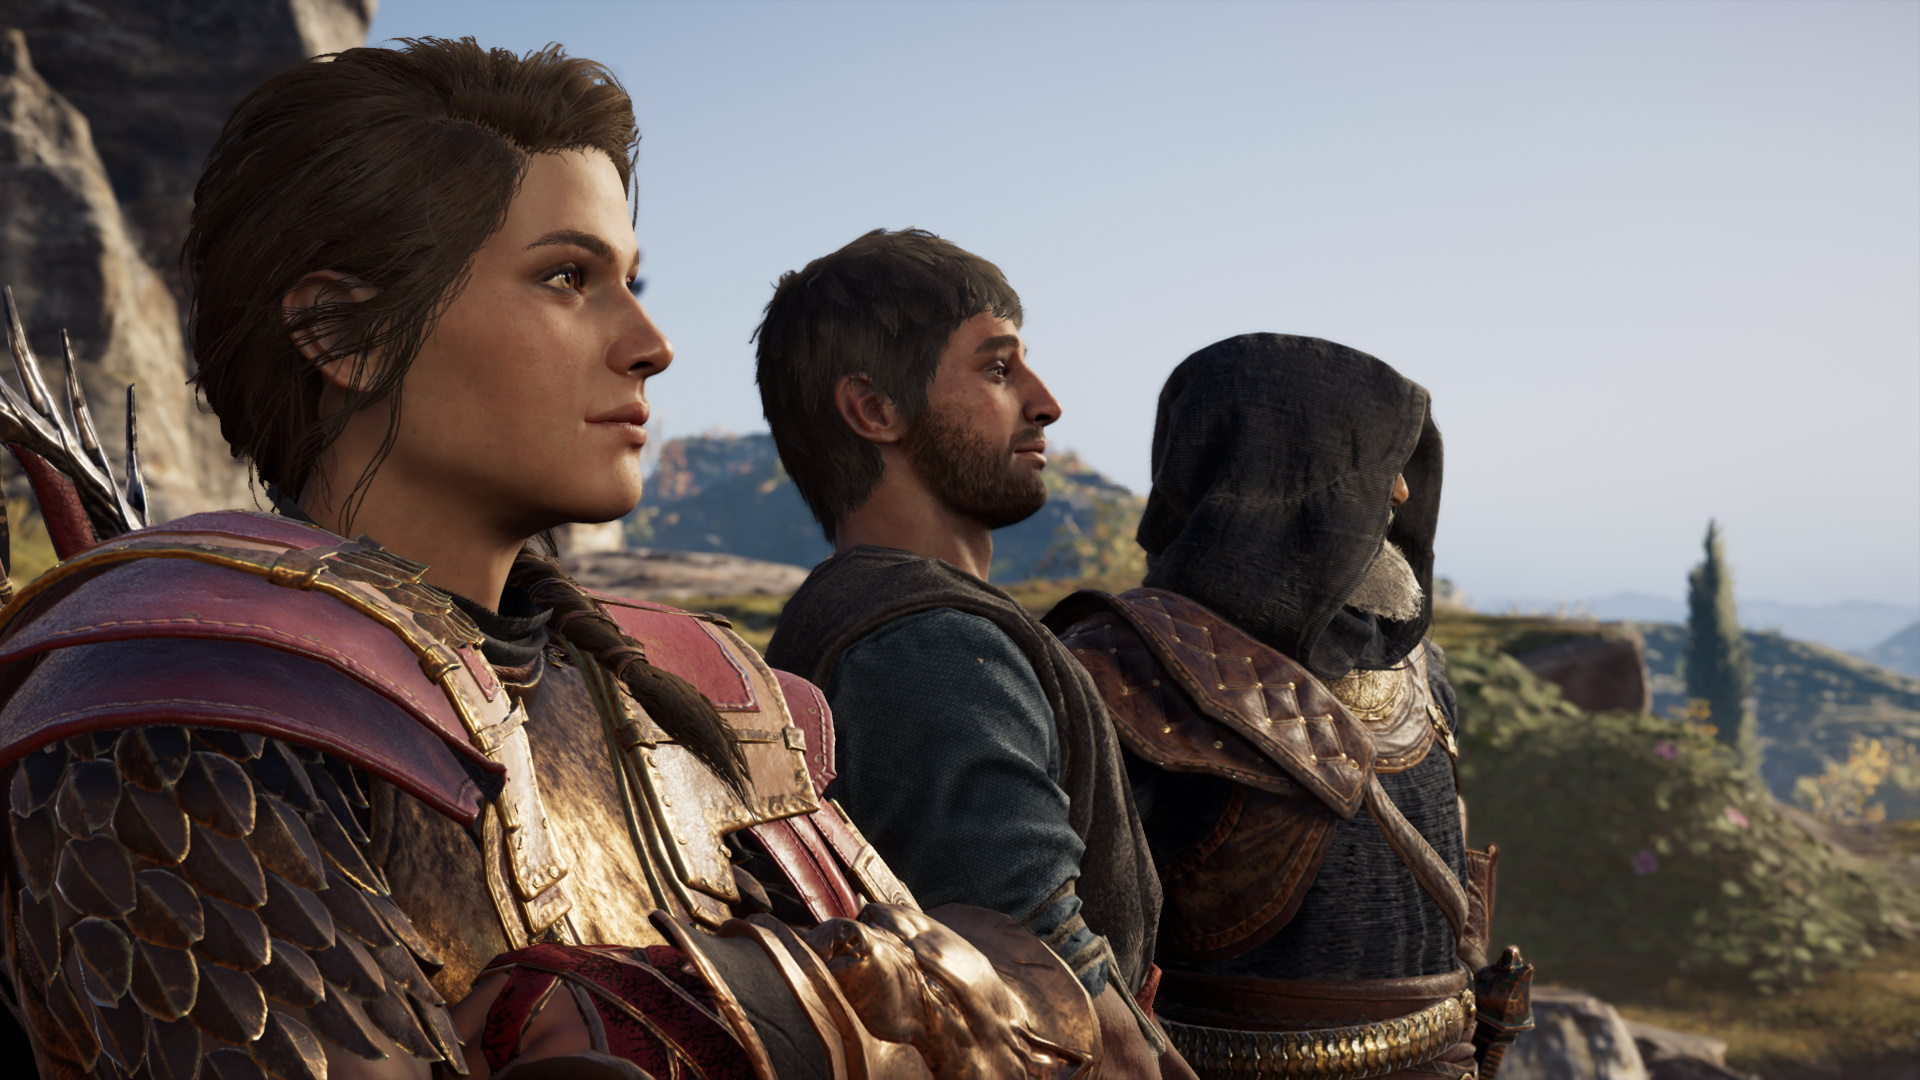 Get Assassin's Creed Odyssey for free if you test Google's game streaming service (US only) | PC Gamer